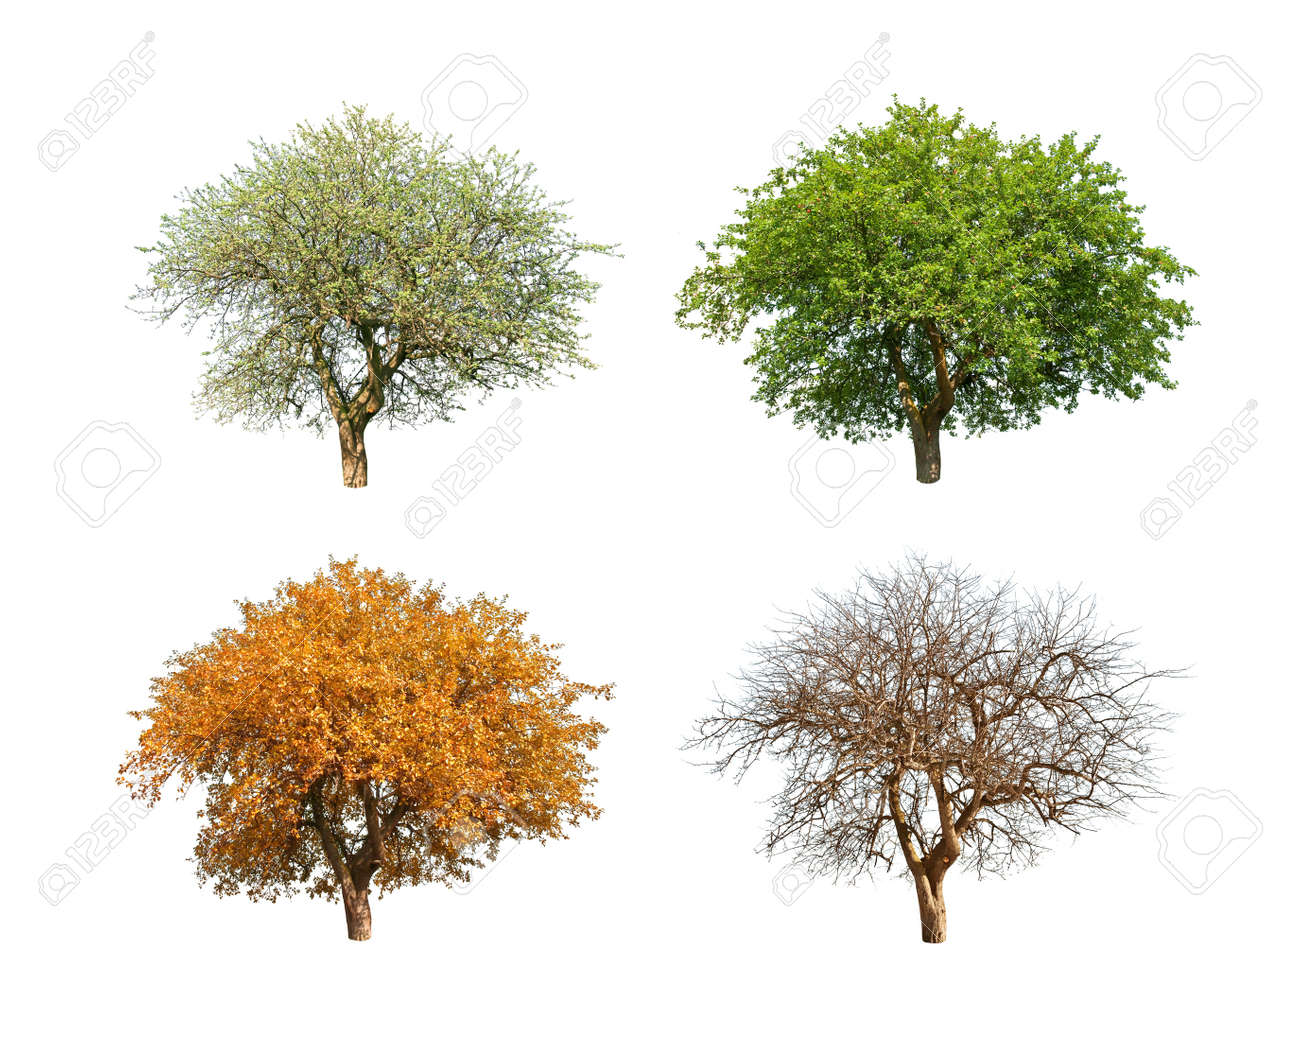 isolated tree in for season - 7922131